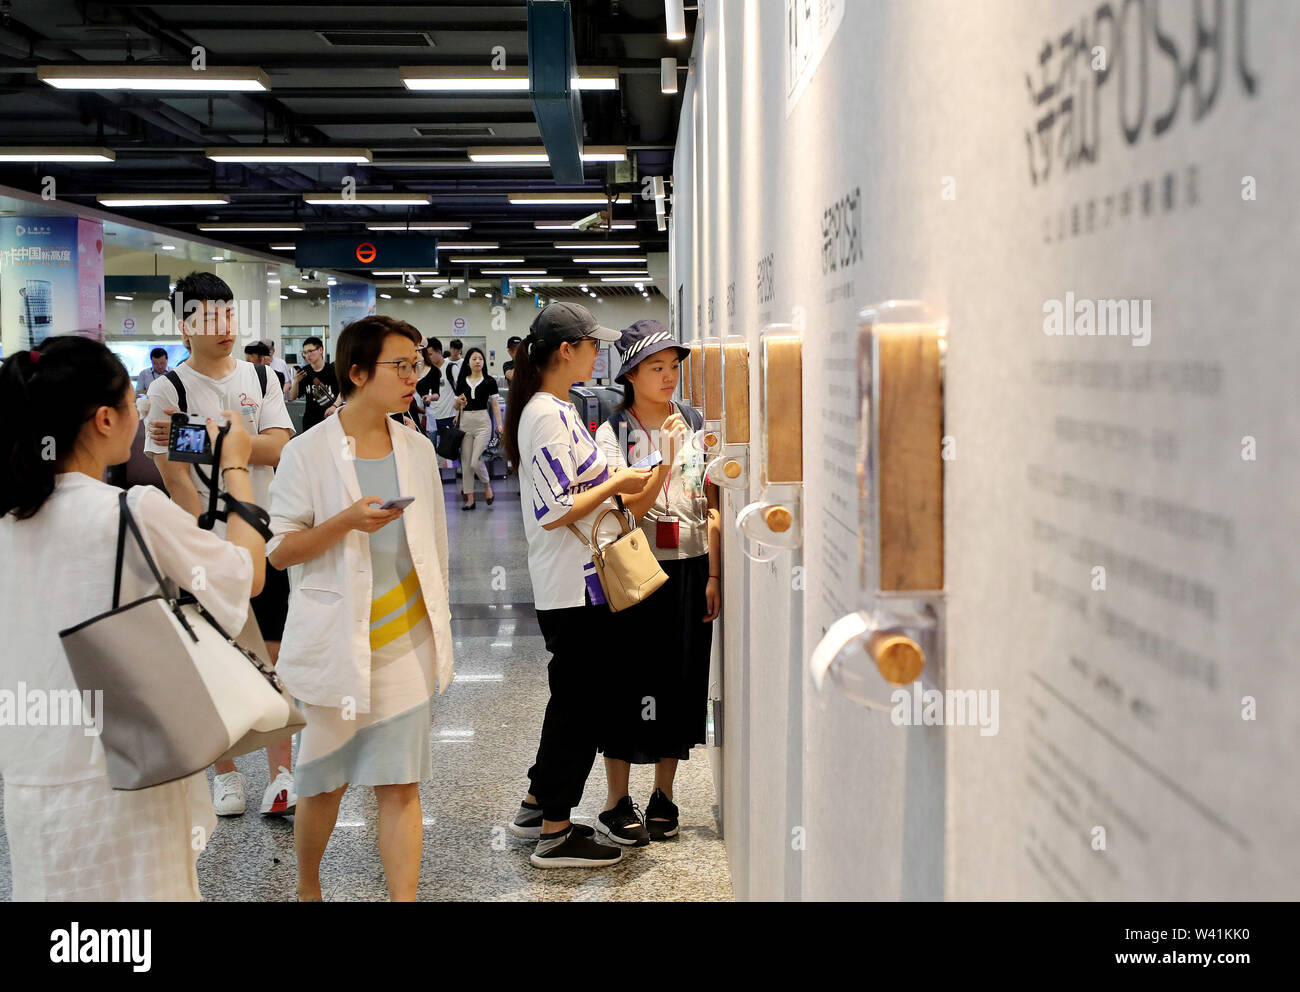 Shanghai. 19th July, 2019. Passengers view point-of-sale (POS) terminals on a wall at Lujiazui subway station in east China's Shanghai, July 19, 2019. A total of 15 POS terminals recently appeared at Lujiazui Station of subway Line 2 in Shanghai. By linking their cellphones to the terminals, passengers can donate one yuan (about 15 U.S. cents) to get a poem written by children in remote rural areas printed on a receipt. All raised money will be used for charity to promote education in these areas. Credit: Fang Zhe/Xinhua/Alamy Live News - Stock Image